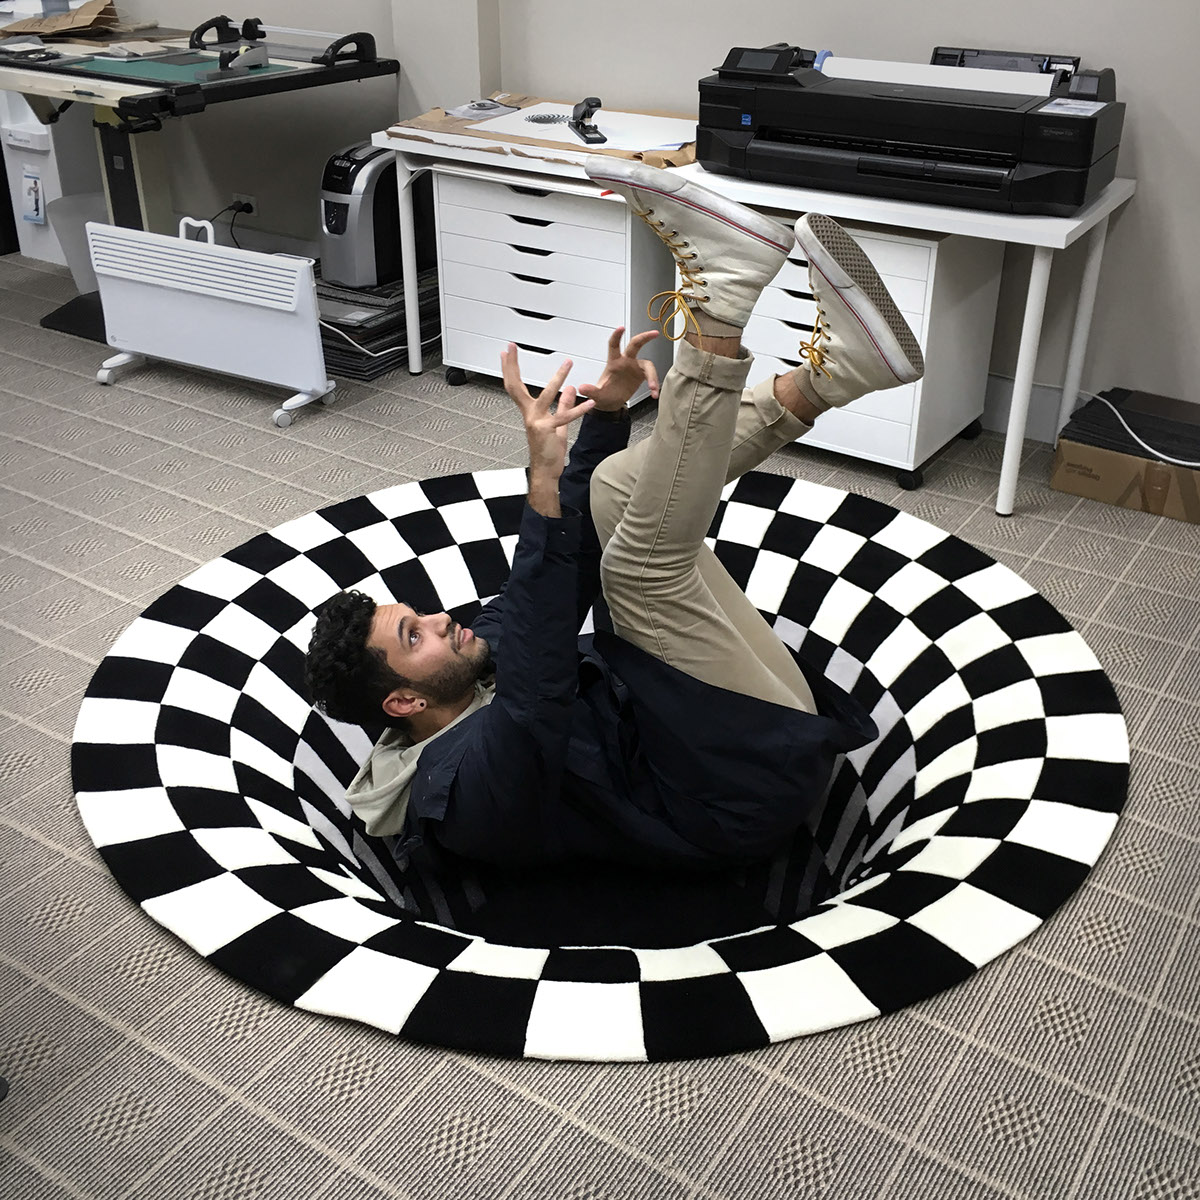 hole rug rugs 3d surface pattern behance malik daniel space project designer designed checker applied produced actual its